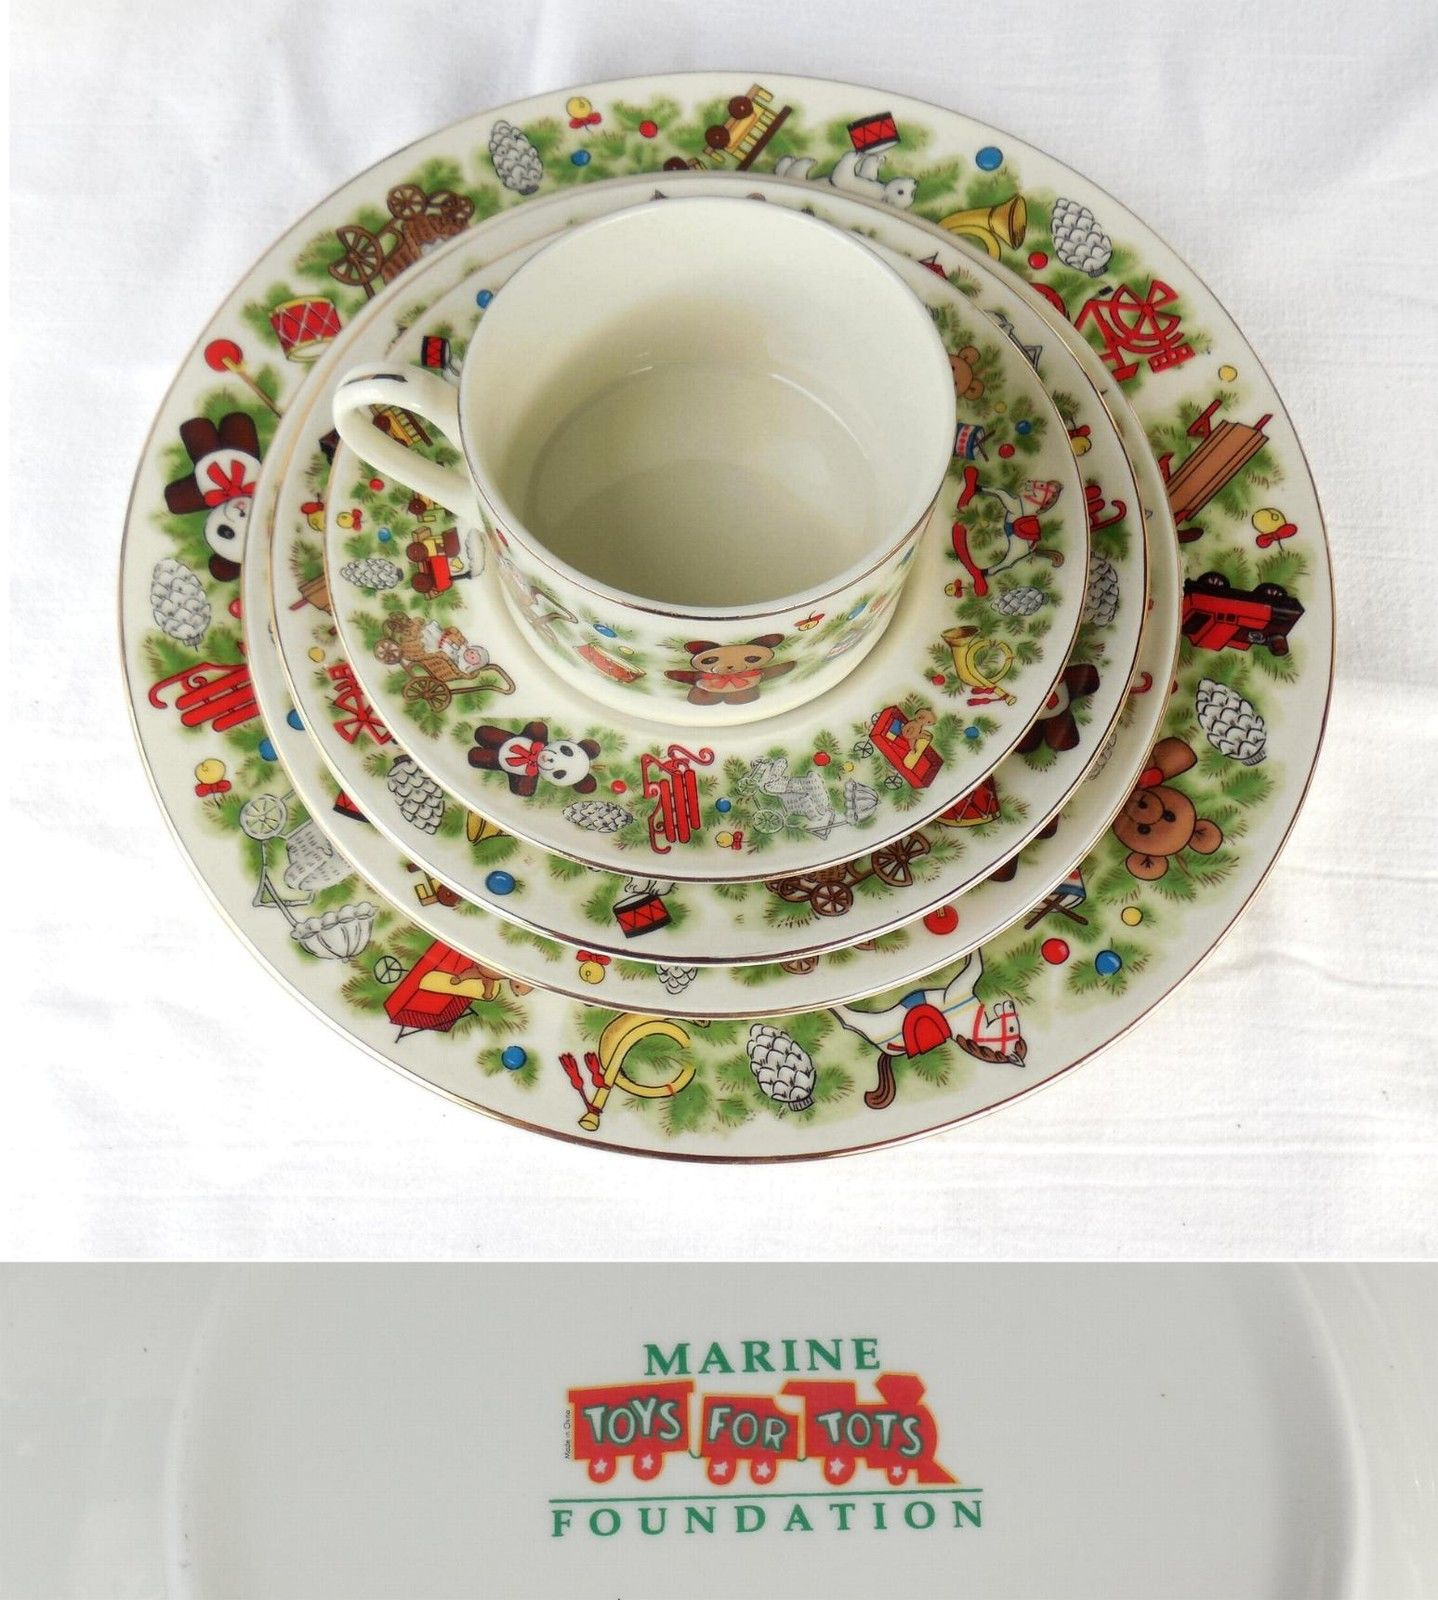 Marine Toys For Tots : Retired pc marine toys for tots k fine china service set